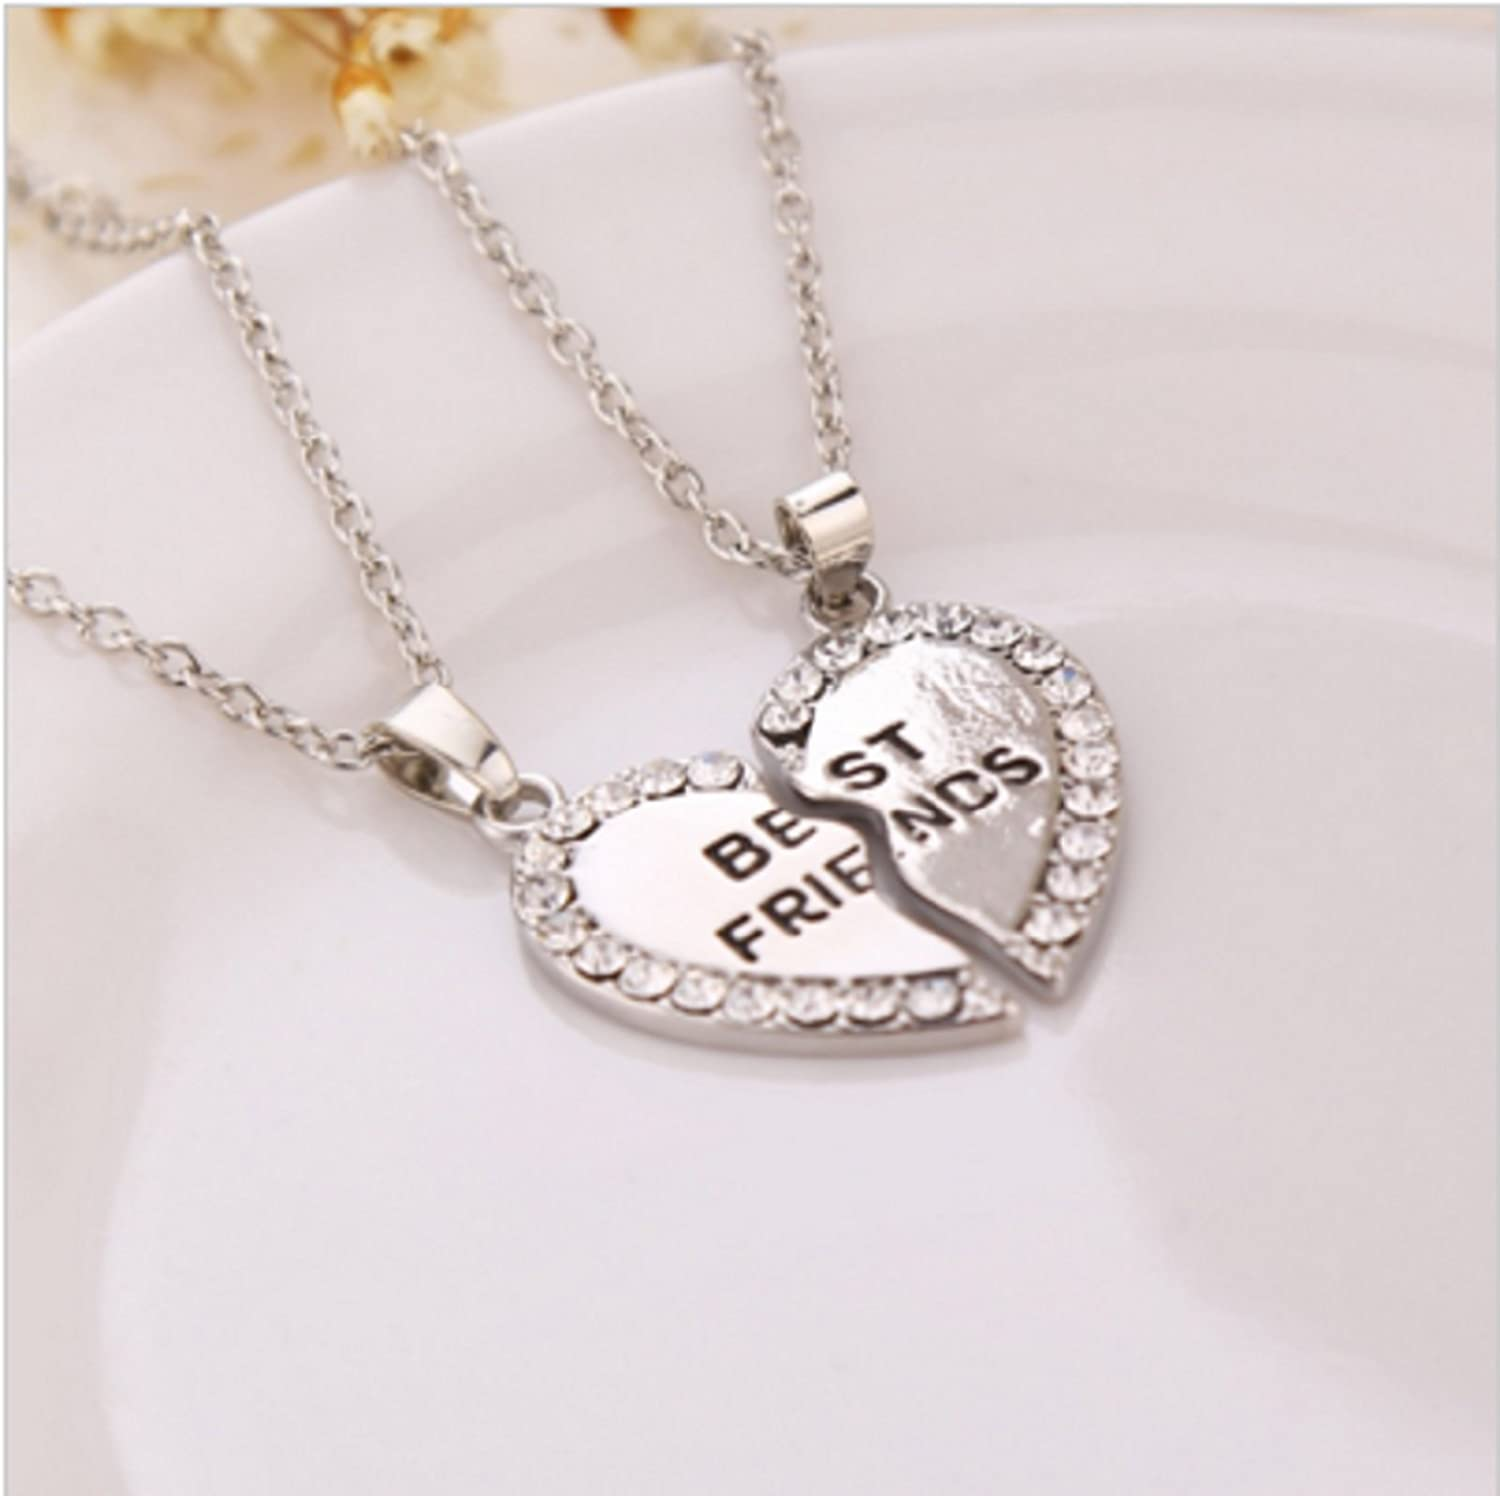 online modish magnetic look at friend friends two buy best product lockets birds